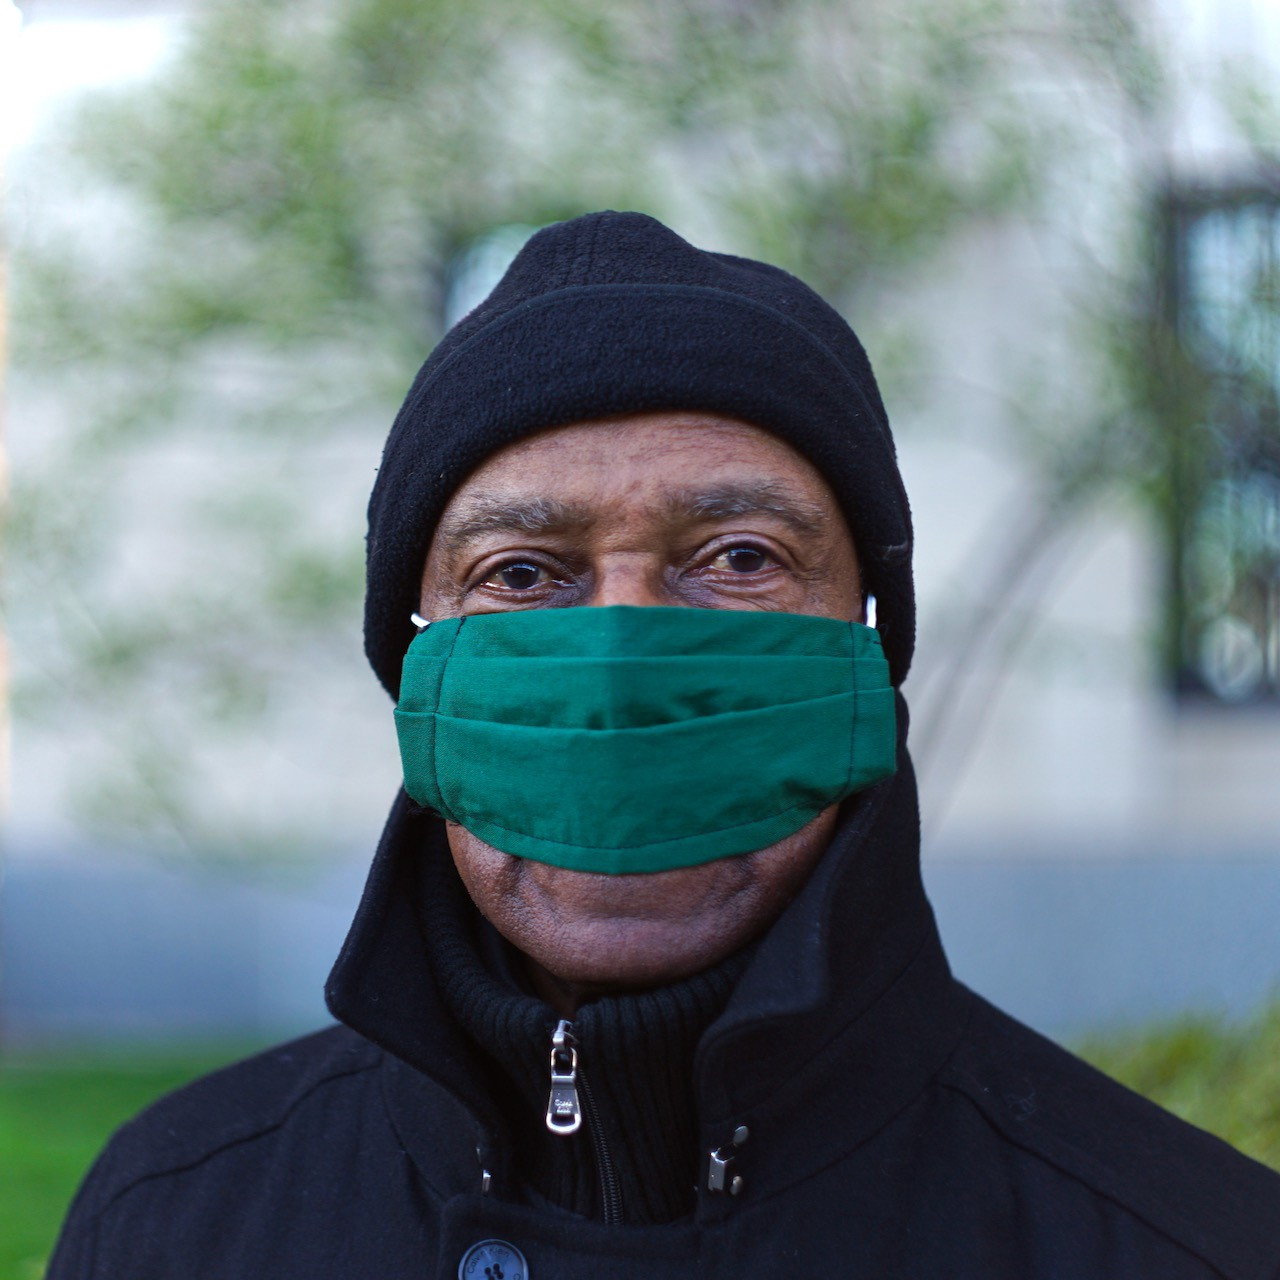 A man with a black hat and a narrow green mask.